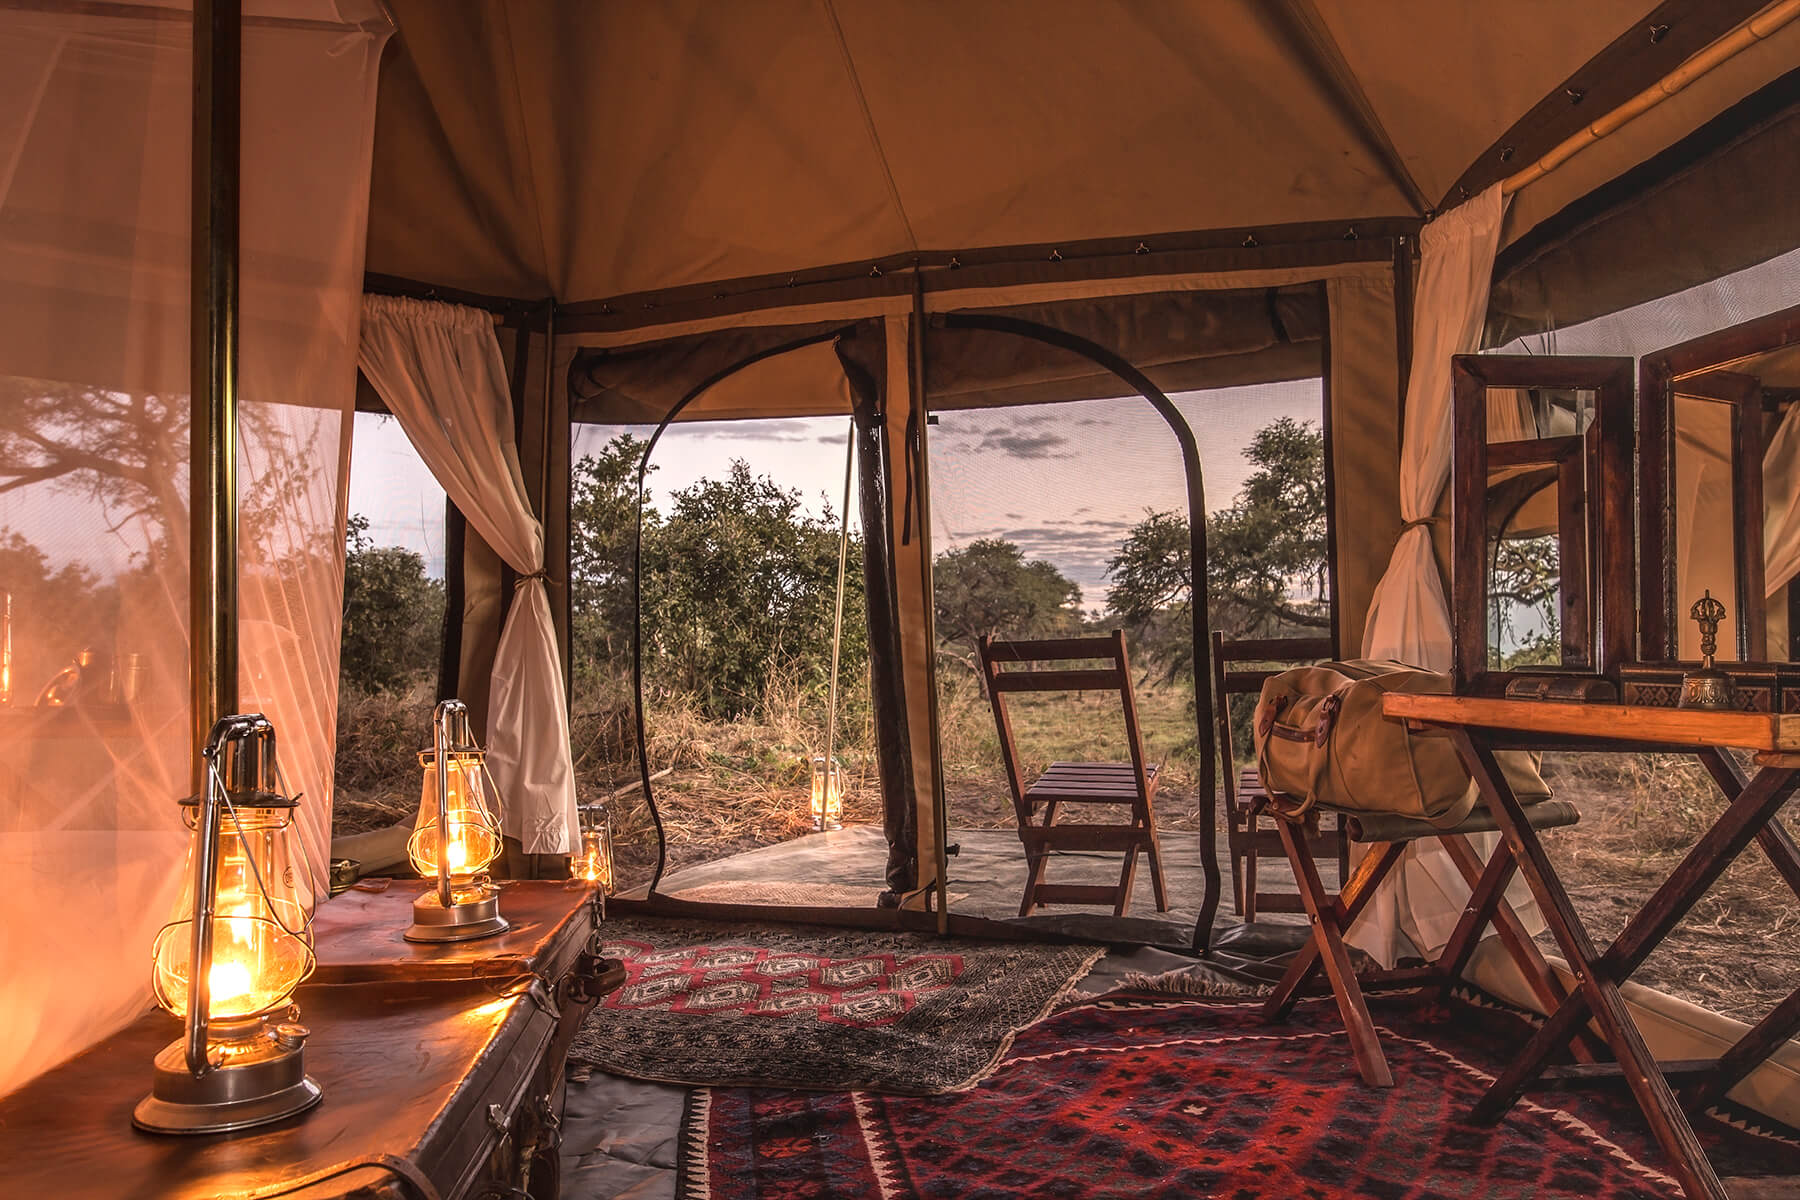 Our one of a kind private canvas tents are spacious and soul soothing...